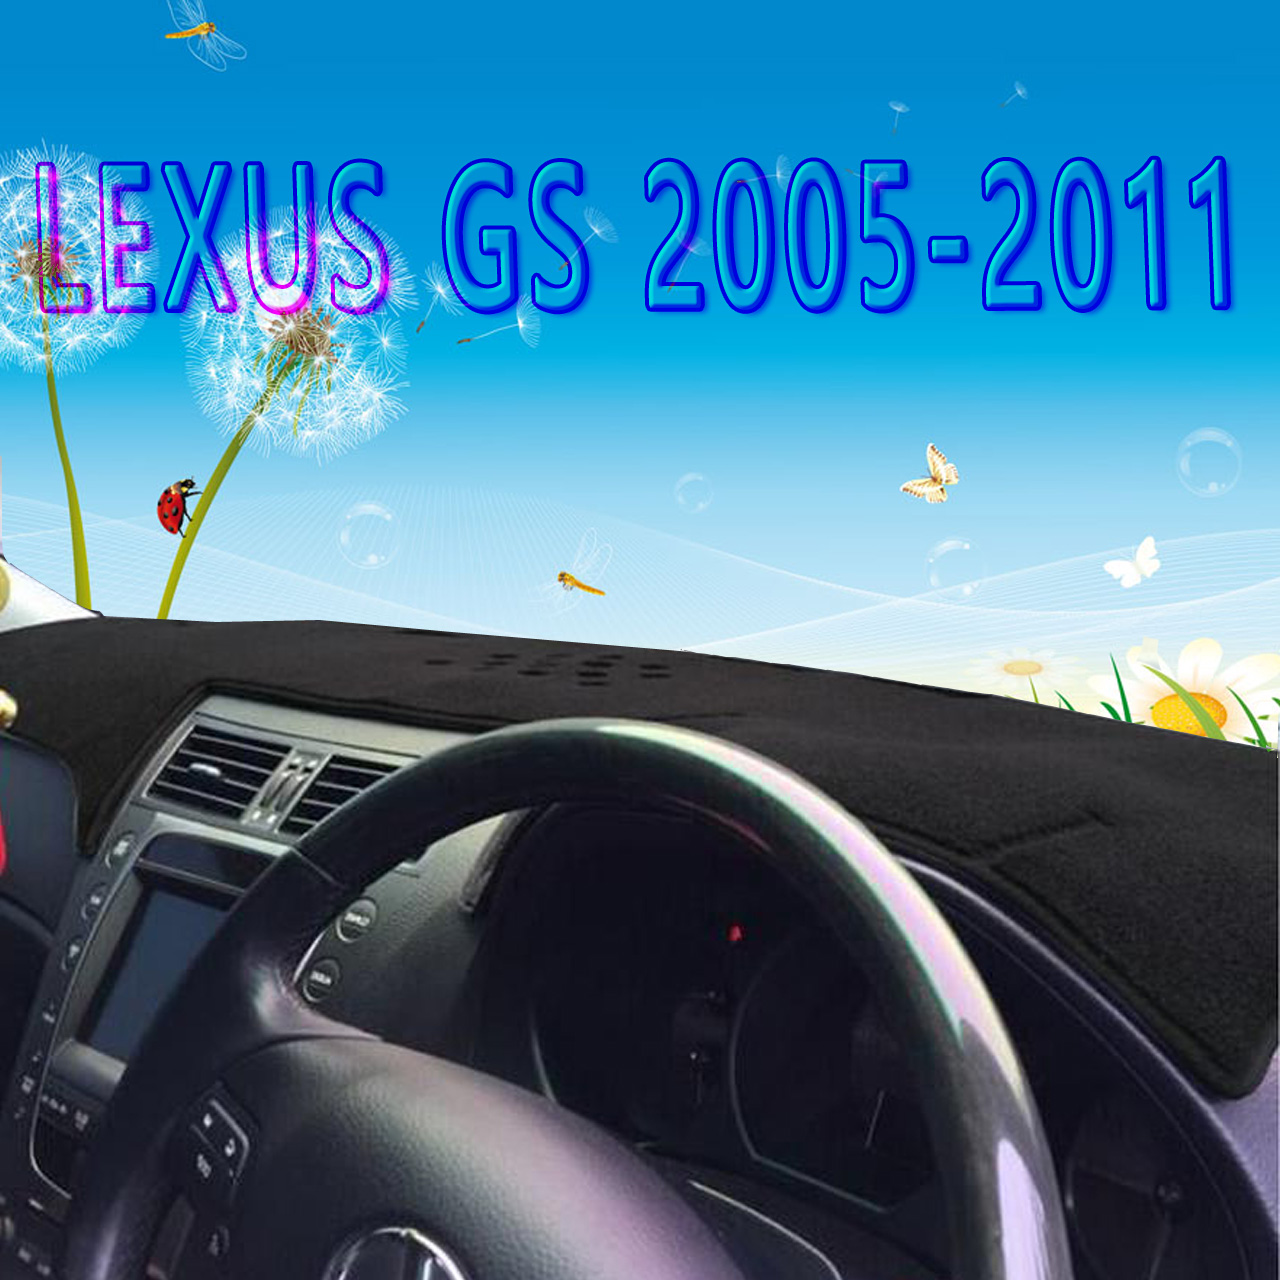 Dashmats Car Styling Accessories Dashboard Cover For Lexus Gs300 Gs430  Gs450h Gs350 Gs250 Gs460 2005